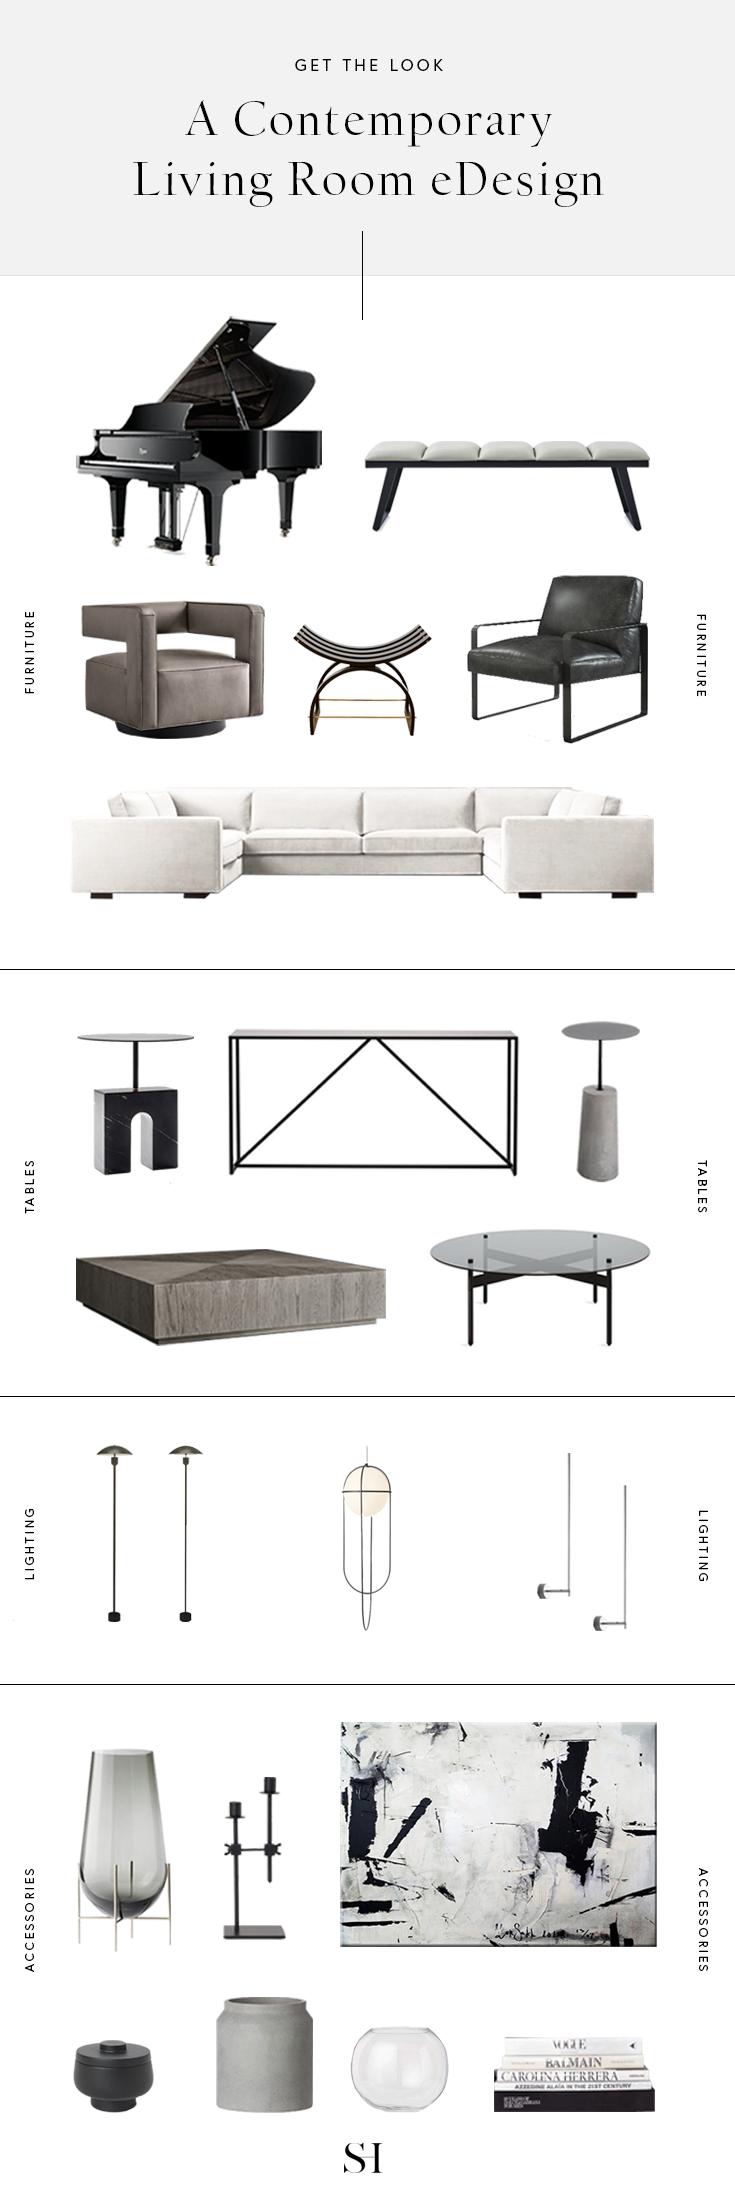 A contemporary and modern living room edesign by the Savvy Heart in Seattle.png